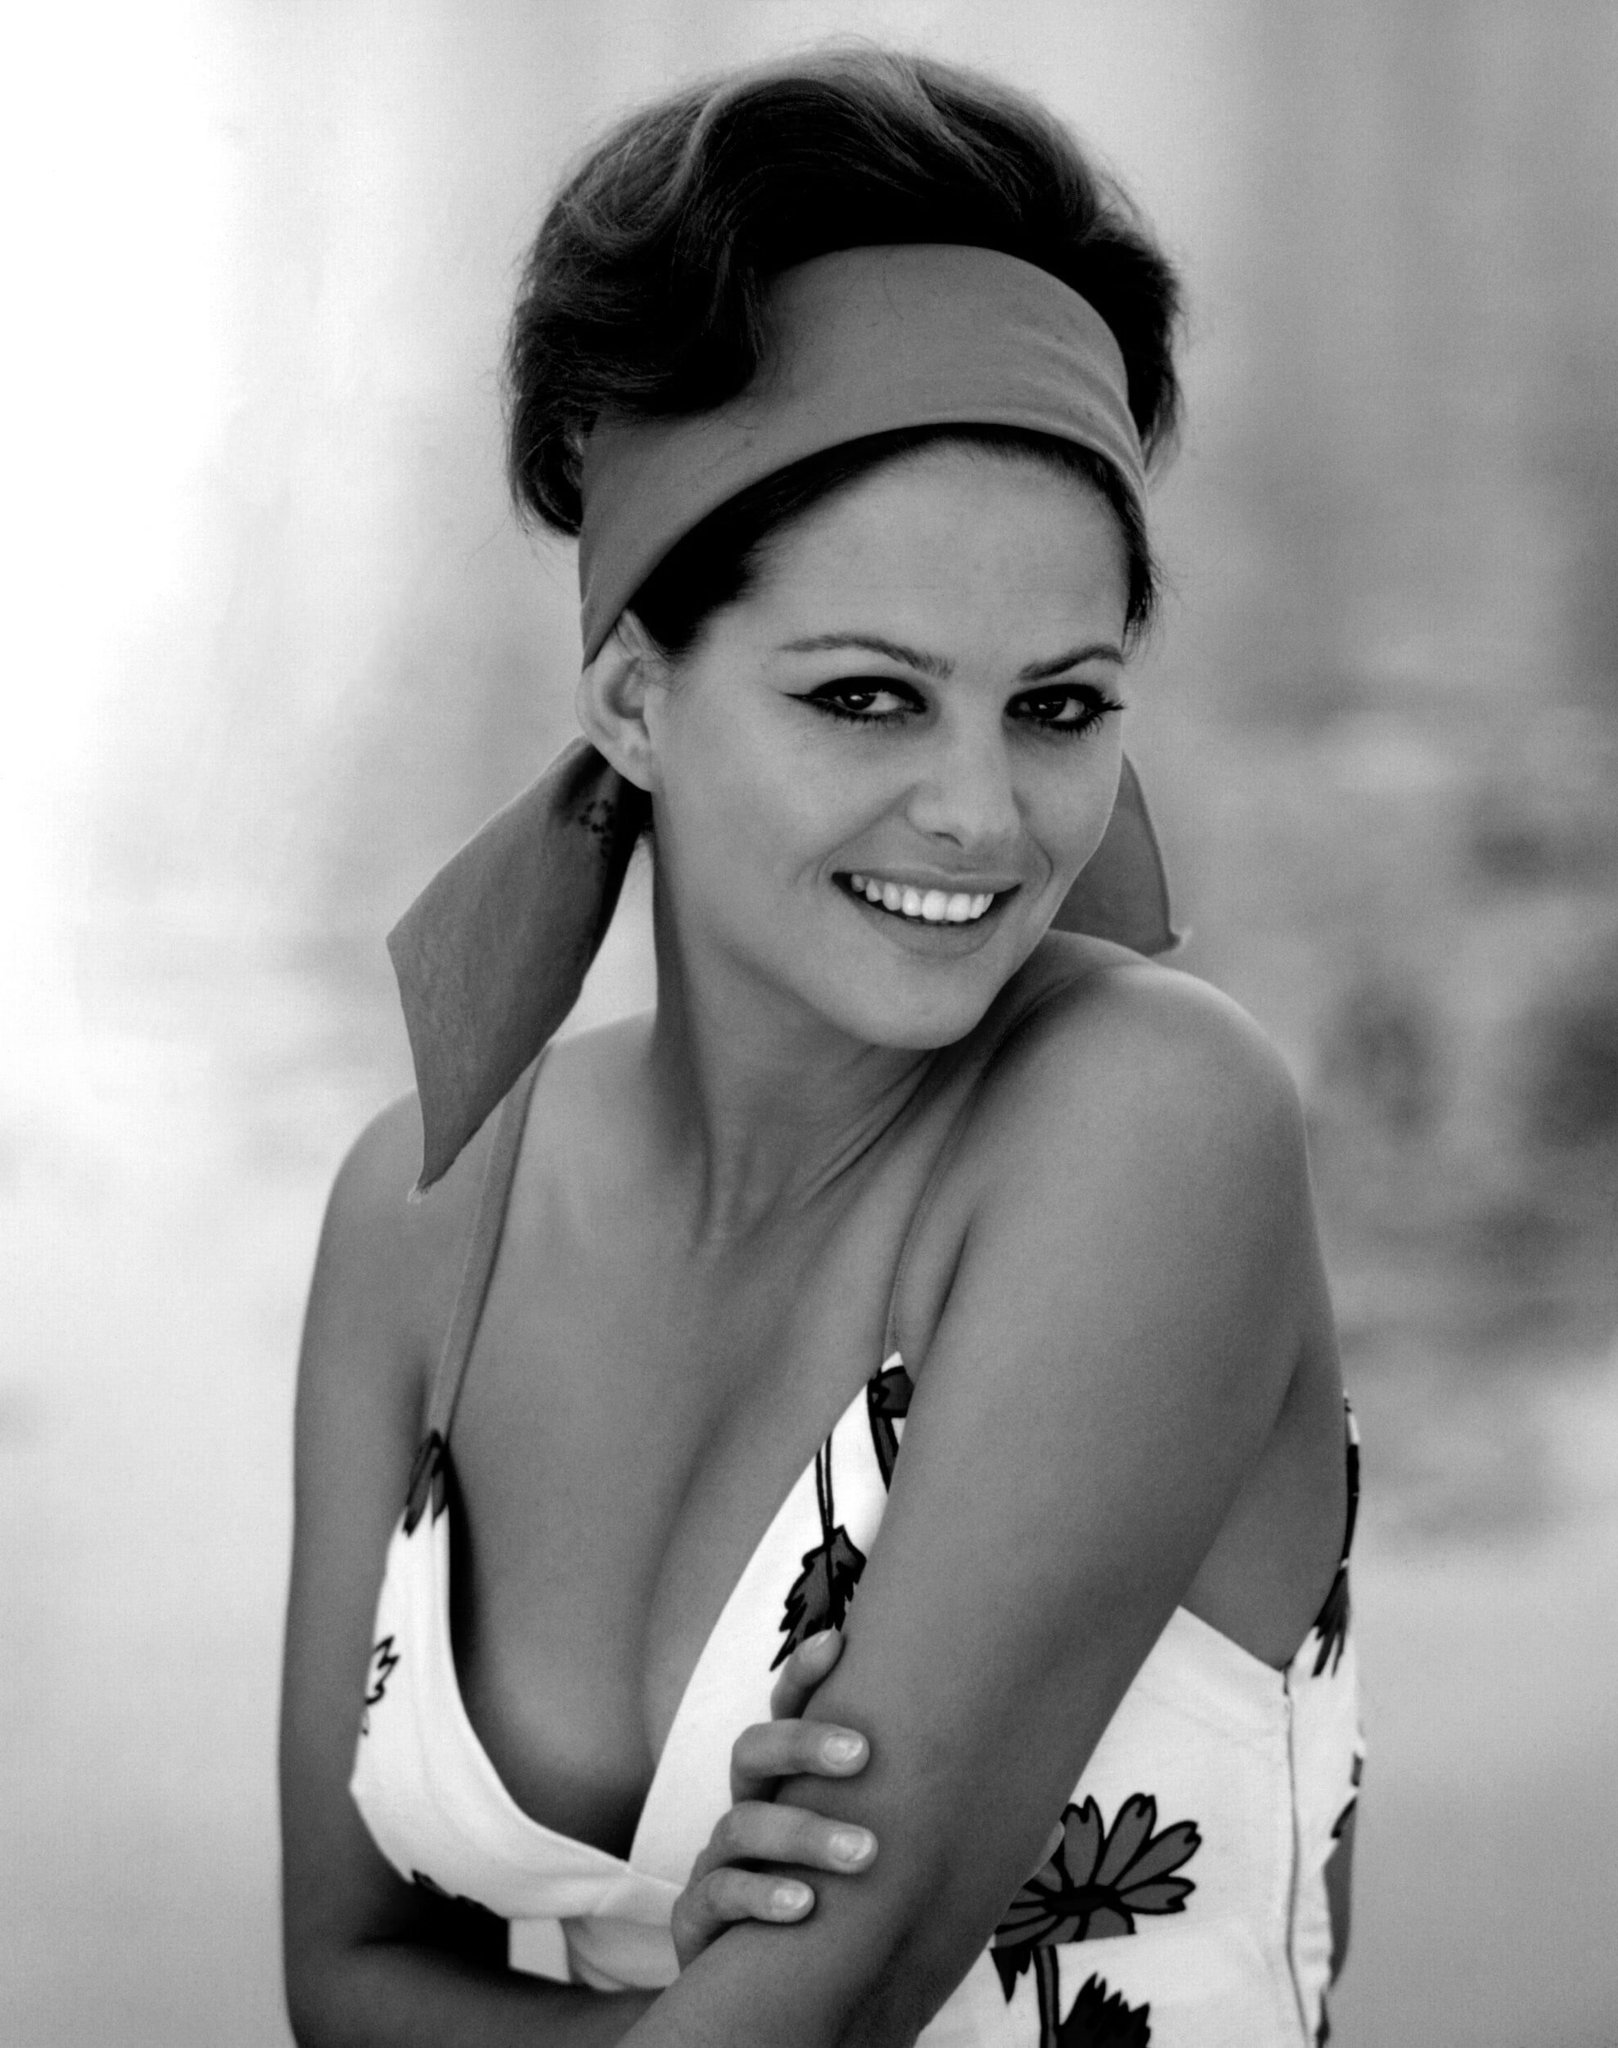 Happy Birthday to the legendary actress Claudia Cardinale, who turns 80 today! (April 15, 1938)